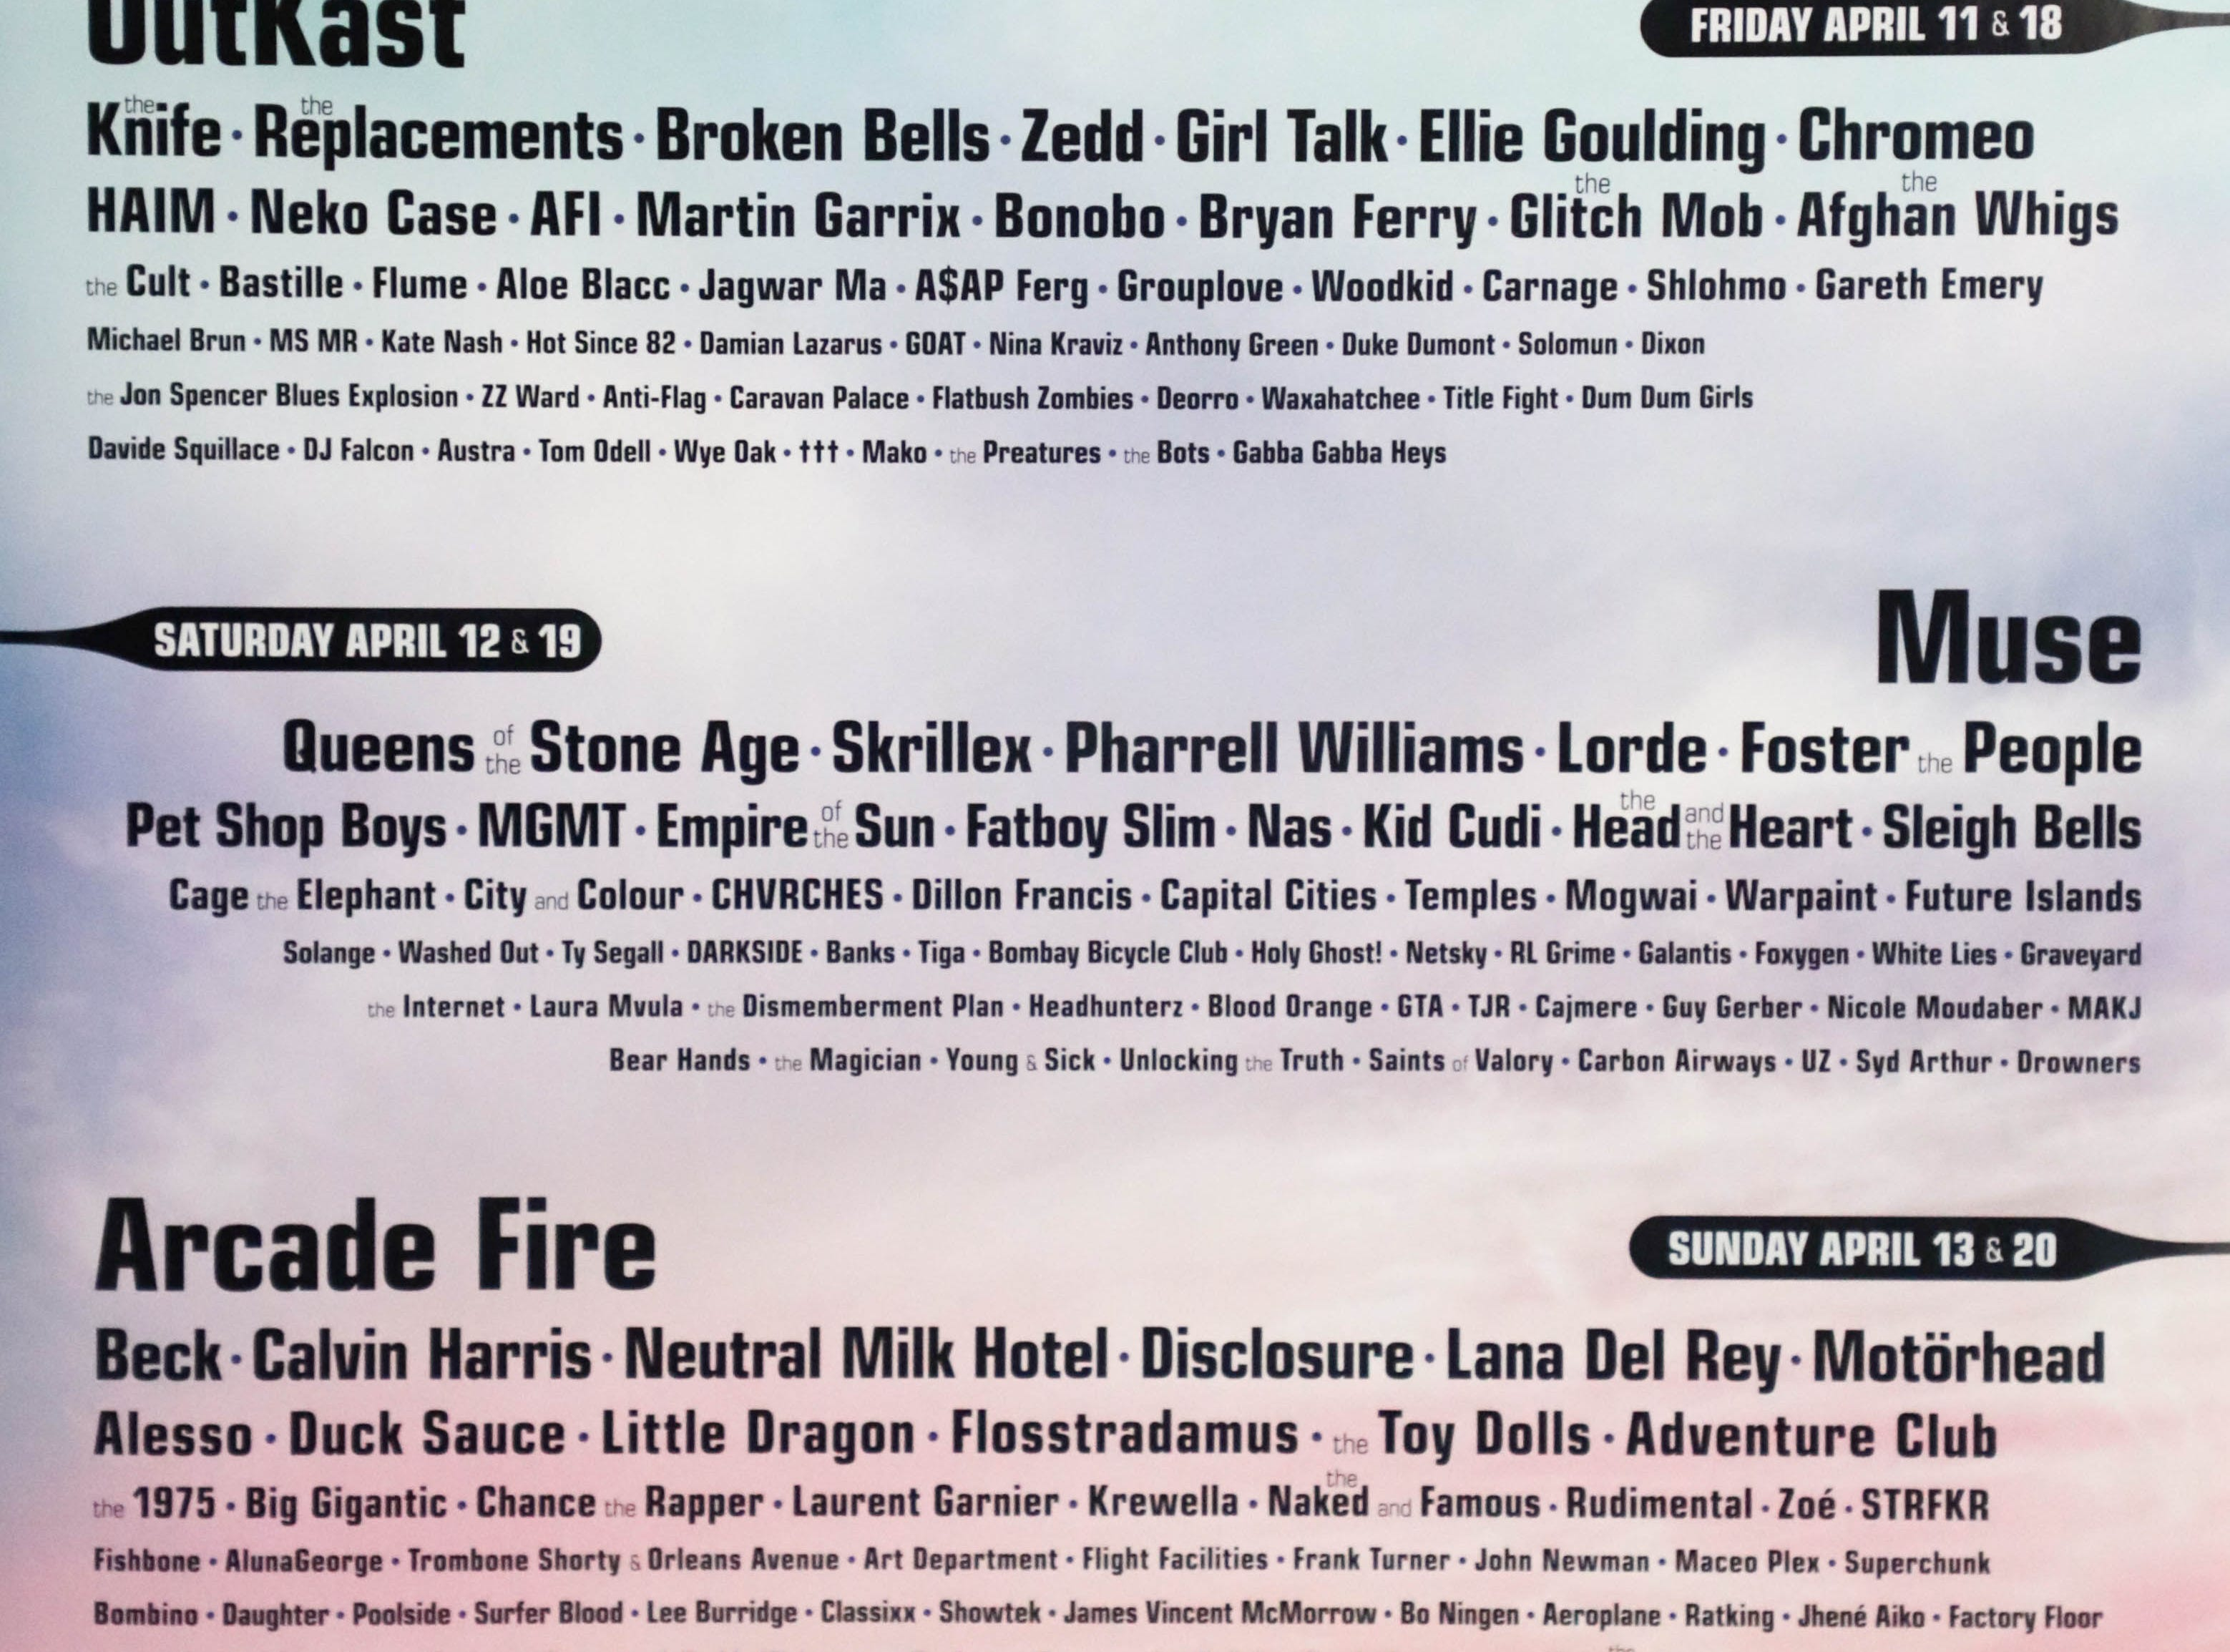 Coachella Valley Music and Arts Festival poster 2014